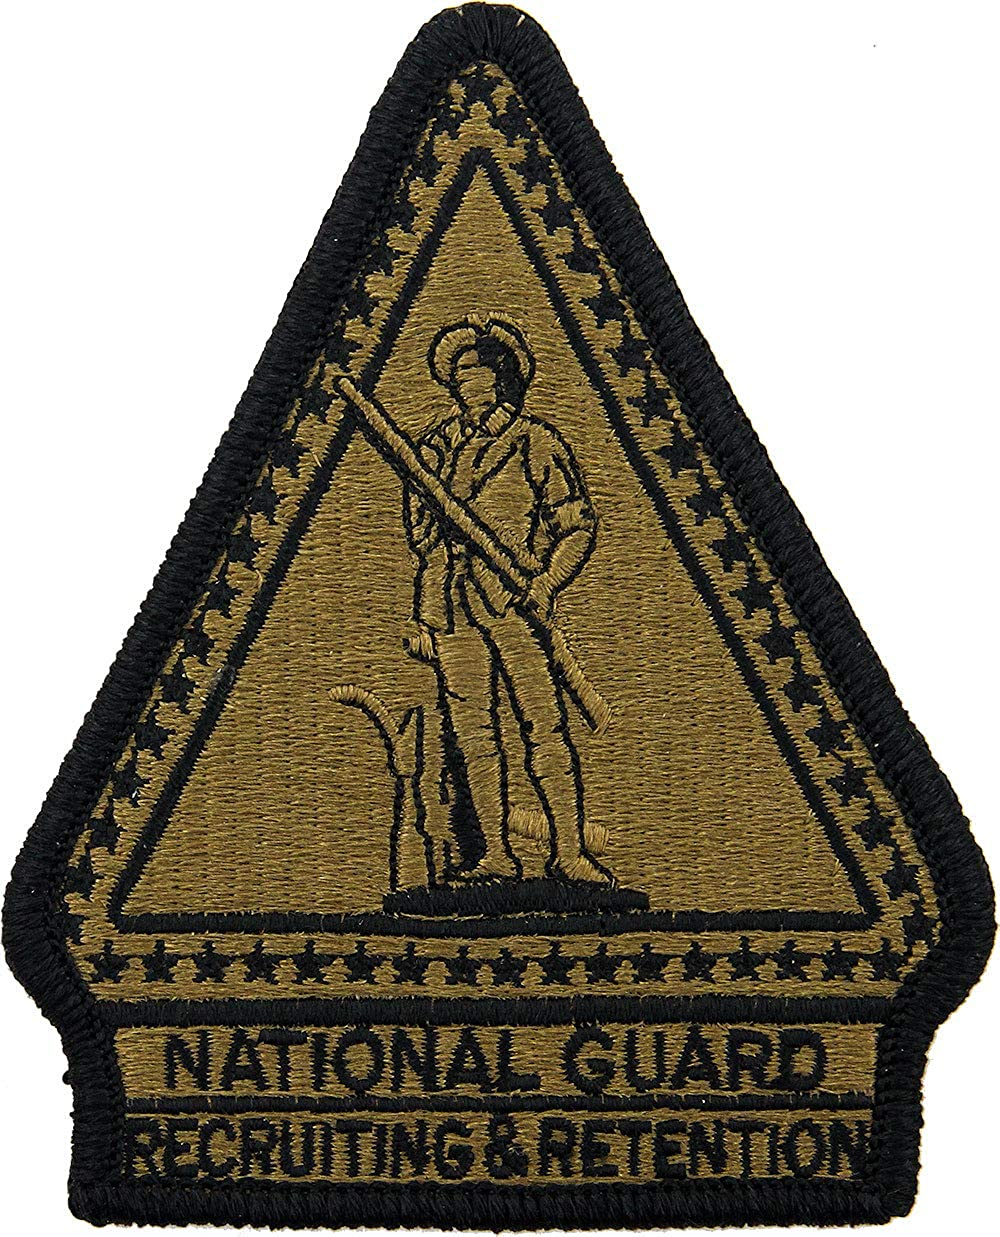 Puerto Rico National Guard Headquarters Patch Scorpion//OCP with Hook Fastener